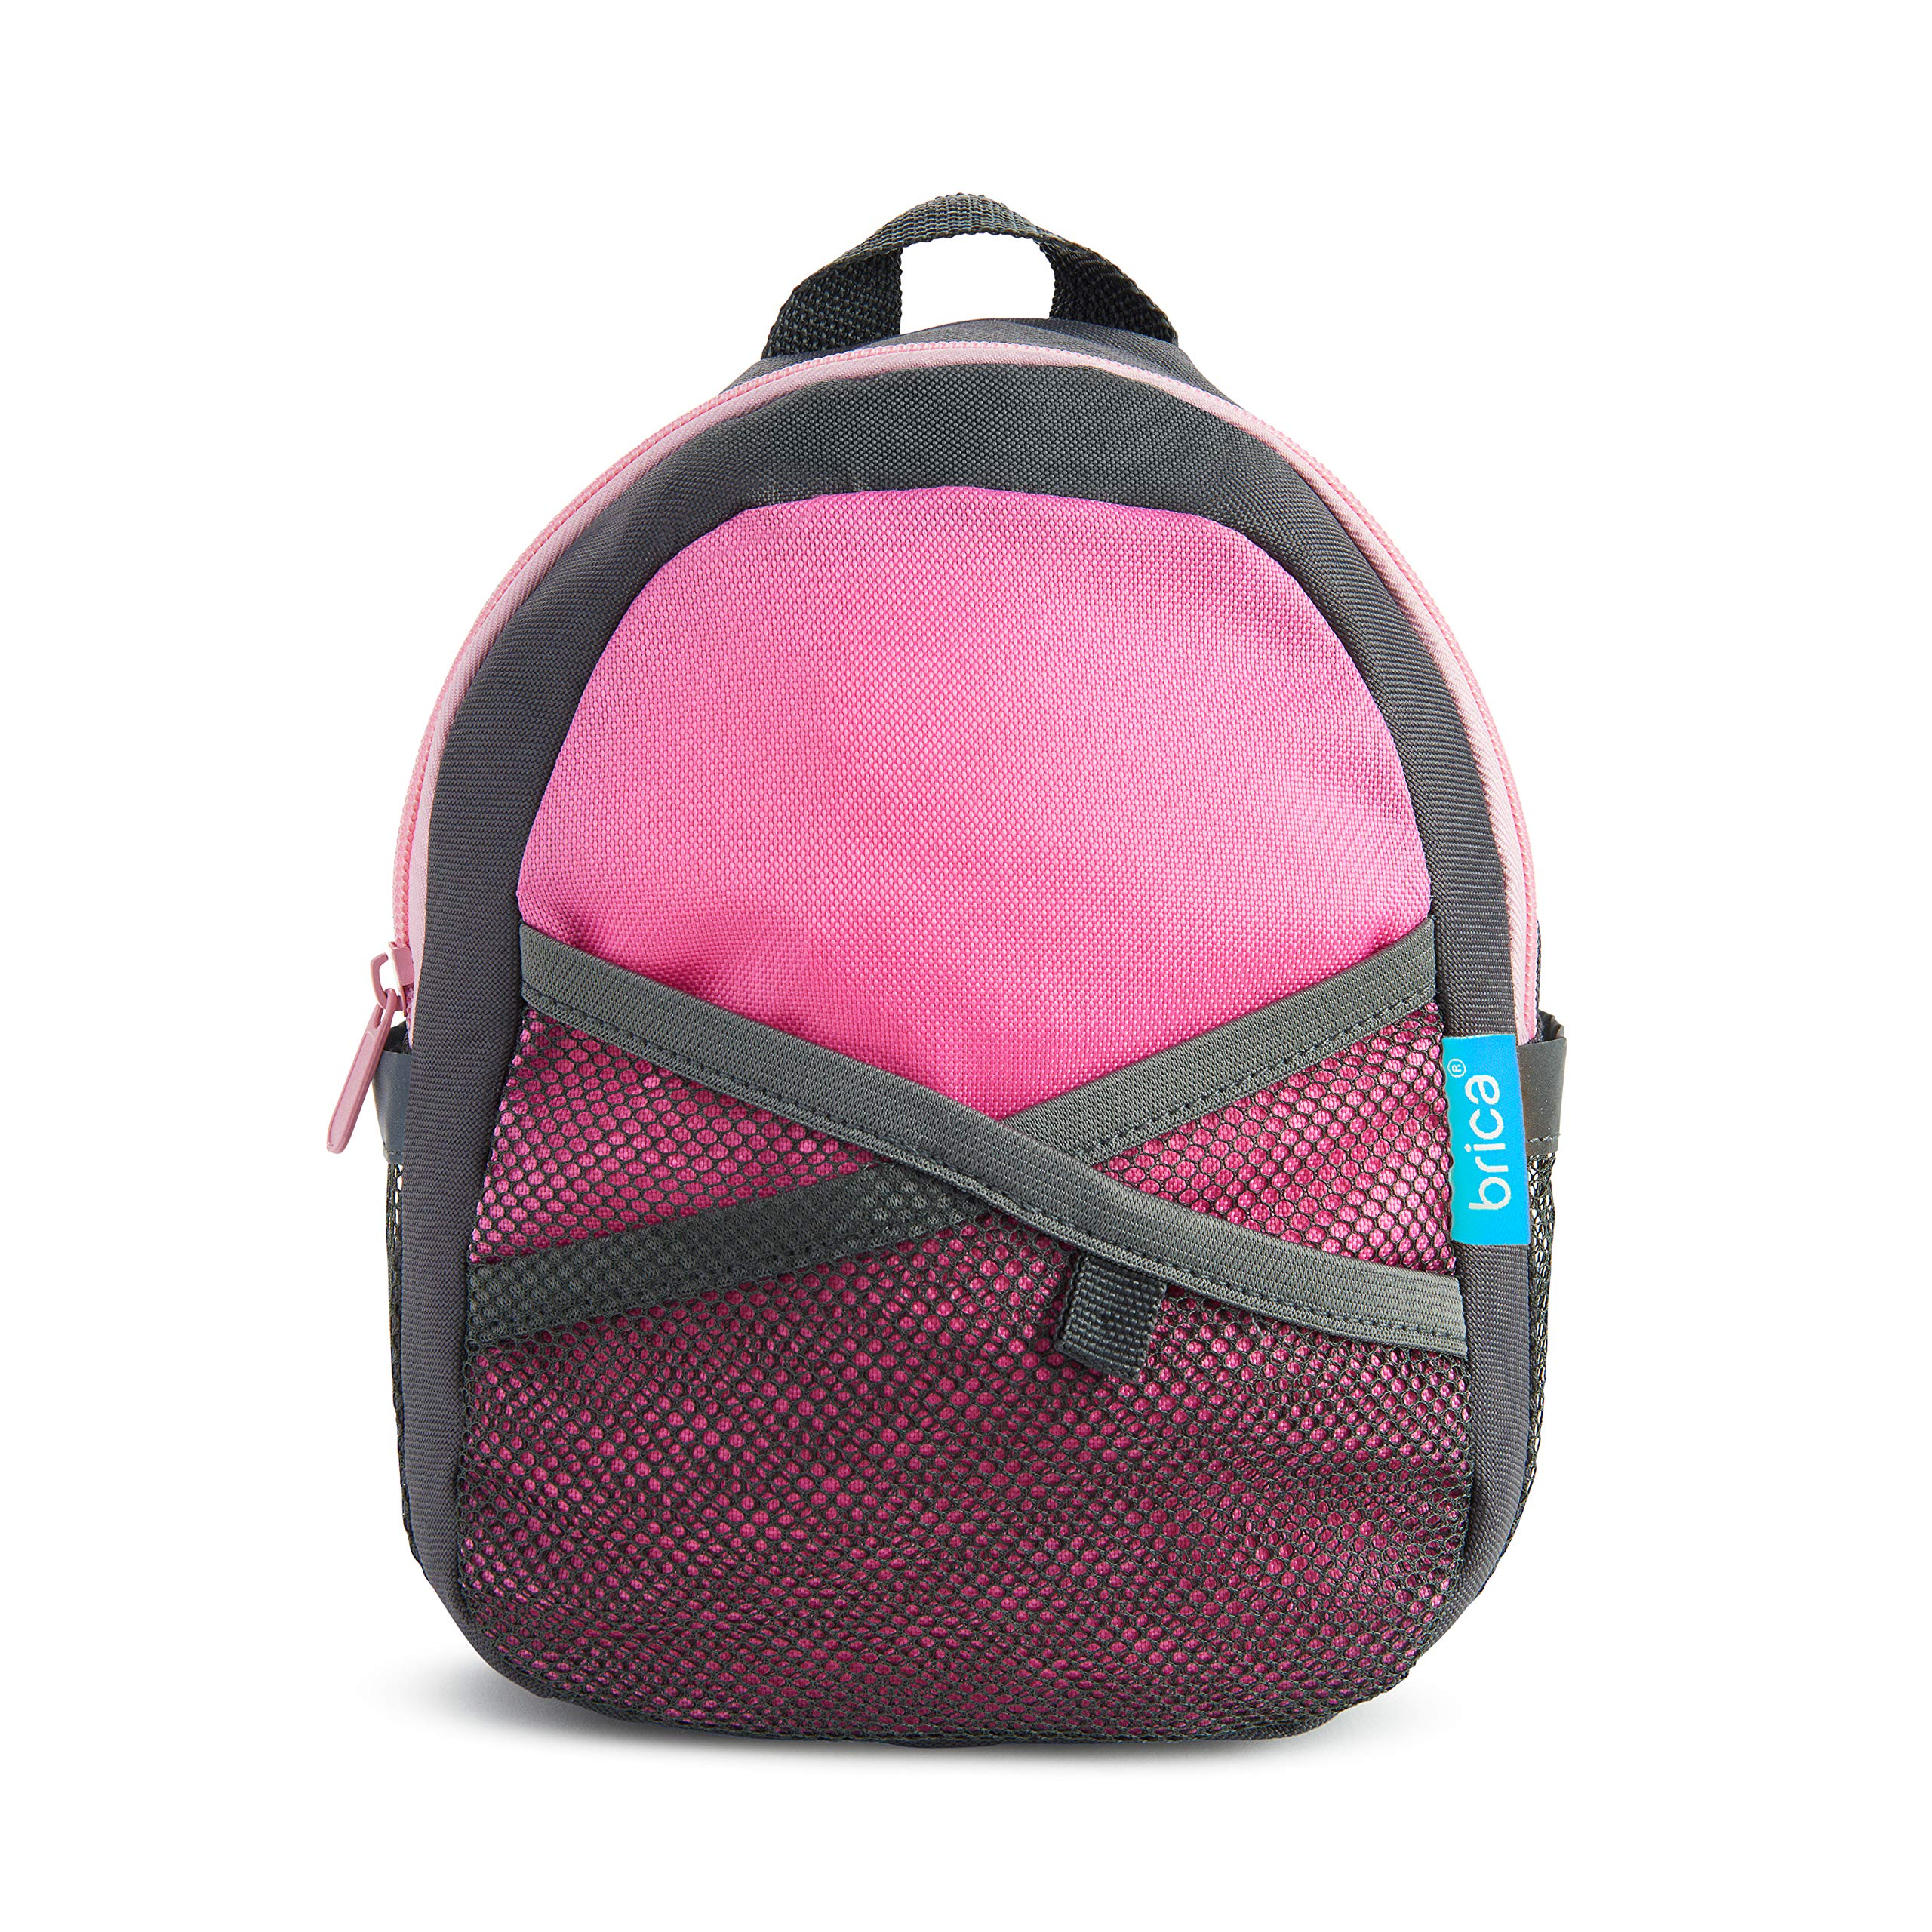 Brica My Side Safety Harness Backpack